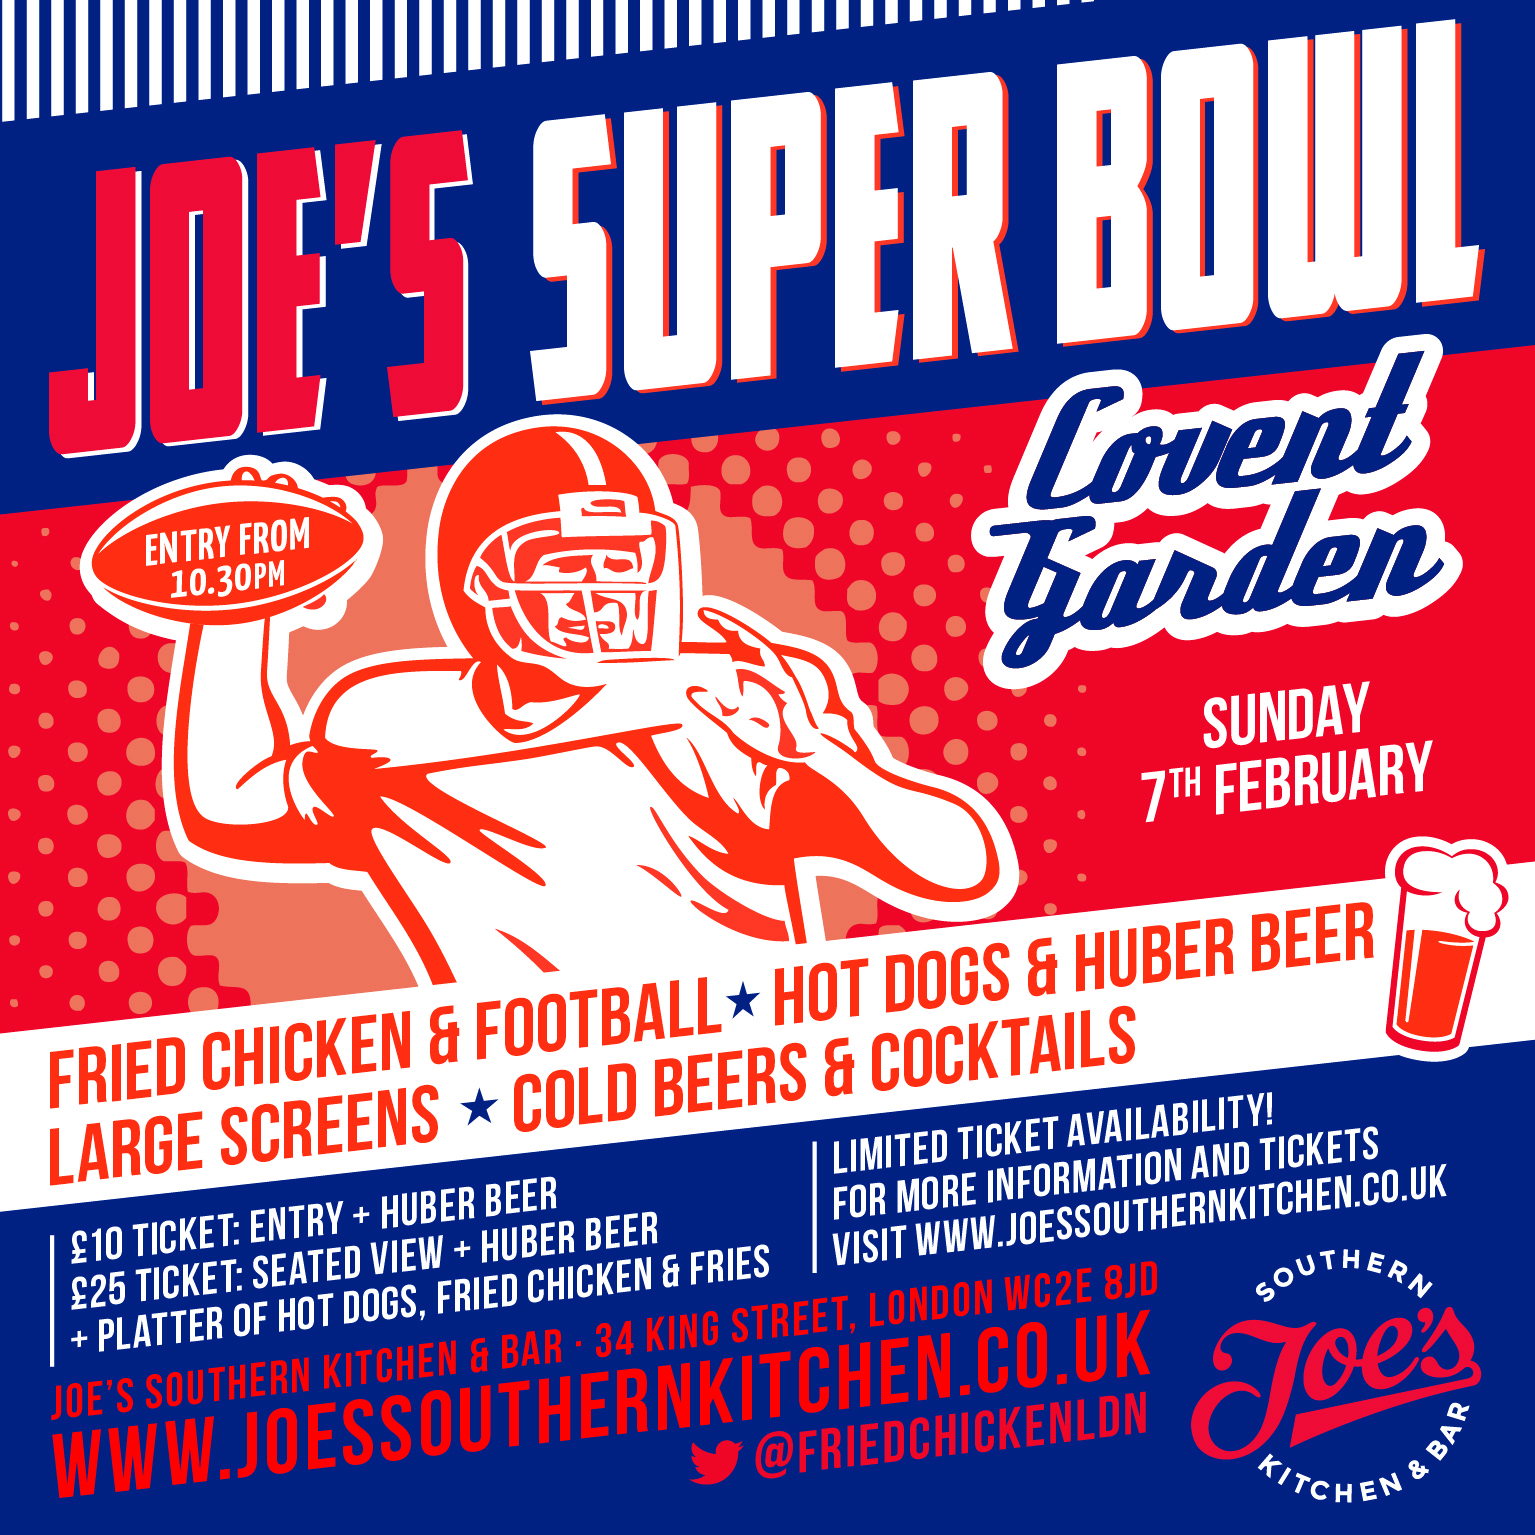 Superbowl 50 At Joe's Southern Kitchen And Bar